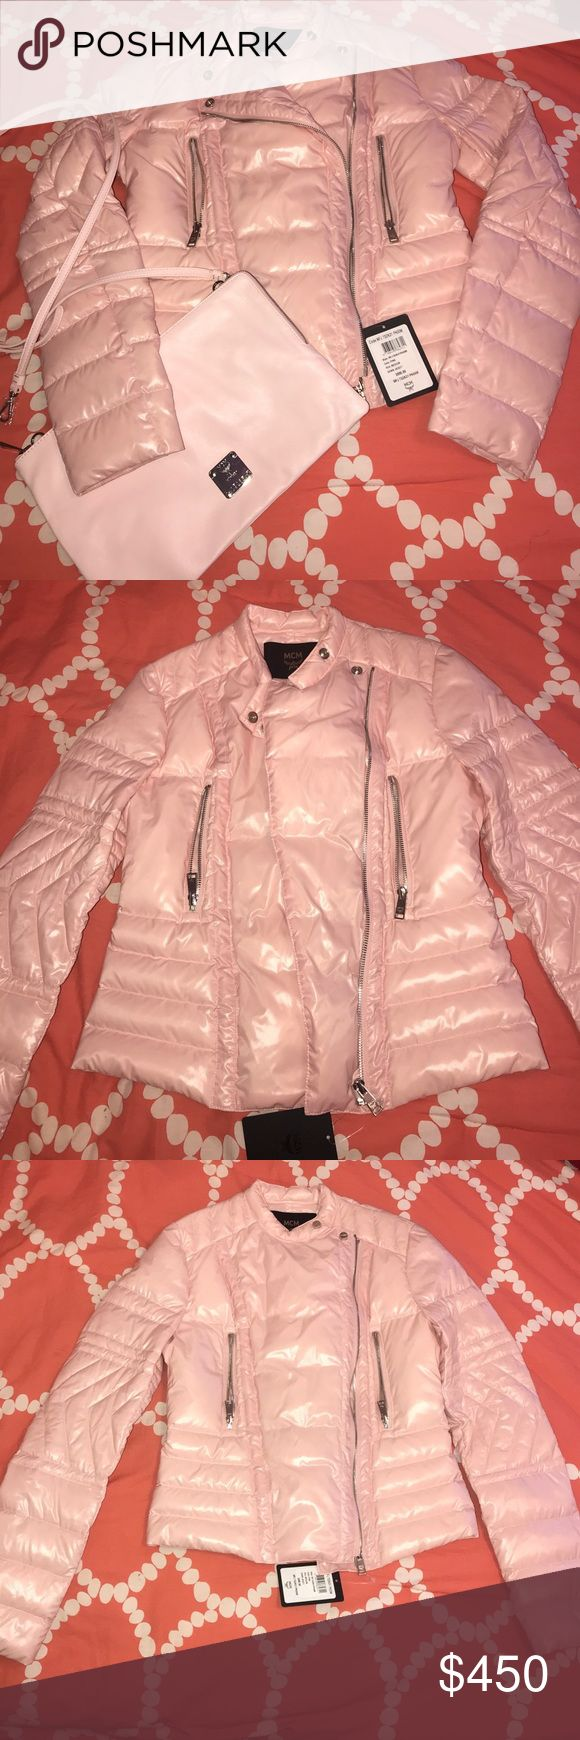 Pink Medium Down Jacket with pink pouch Shiny Soft  Pink Down Jacket with silver zippers and a soft pink pouch to match. The jacket is a biker style Down Jacket with feather filling. NEVER WORN!!! MCM Jackets & Coats